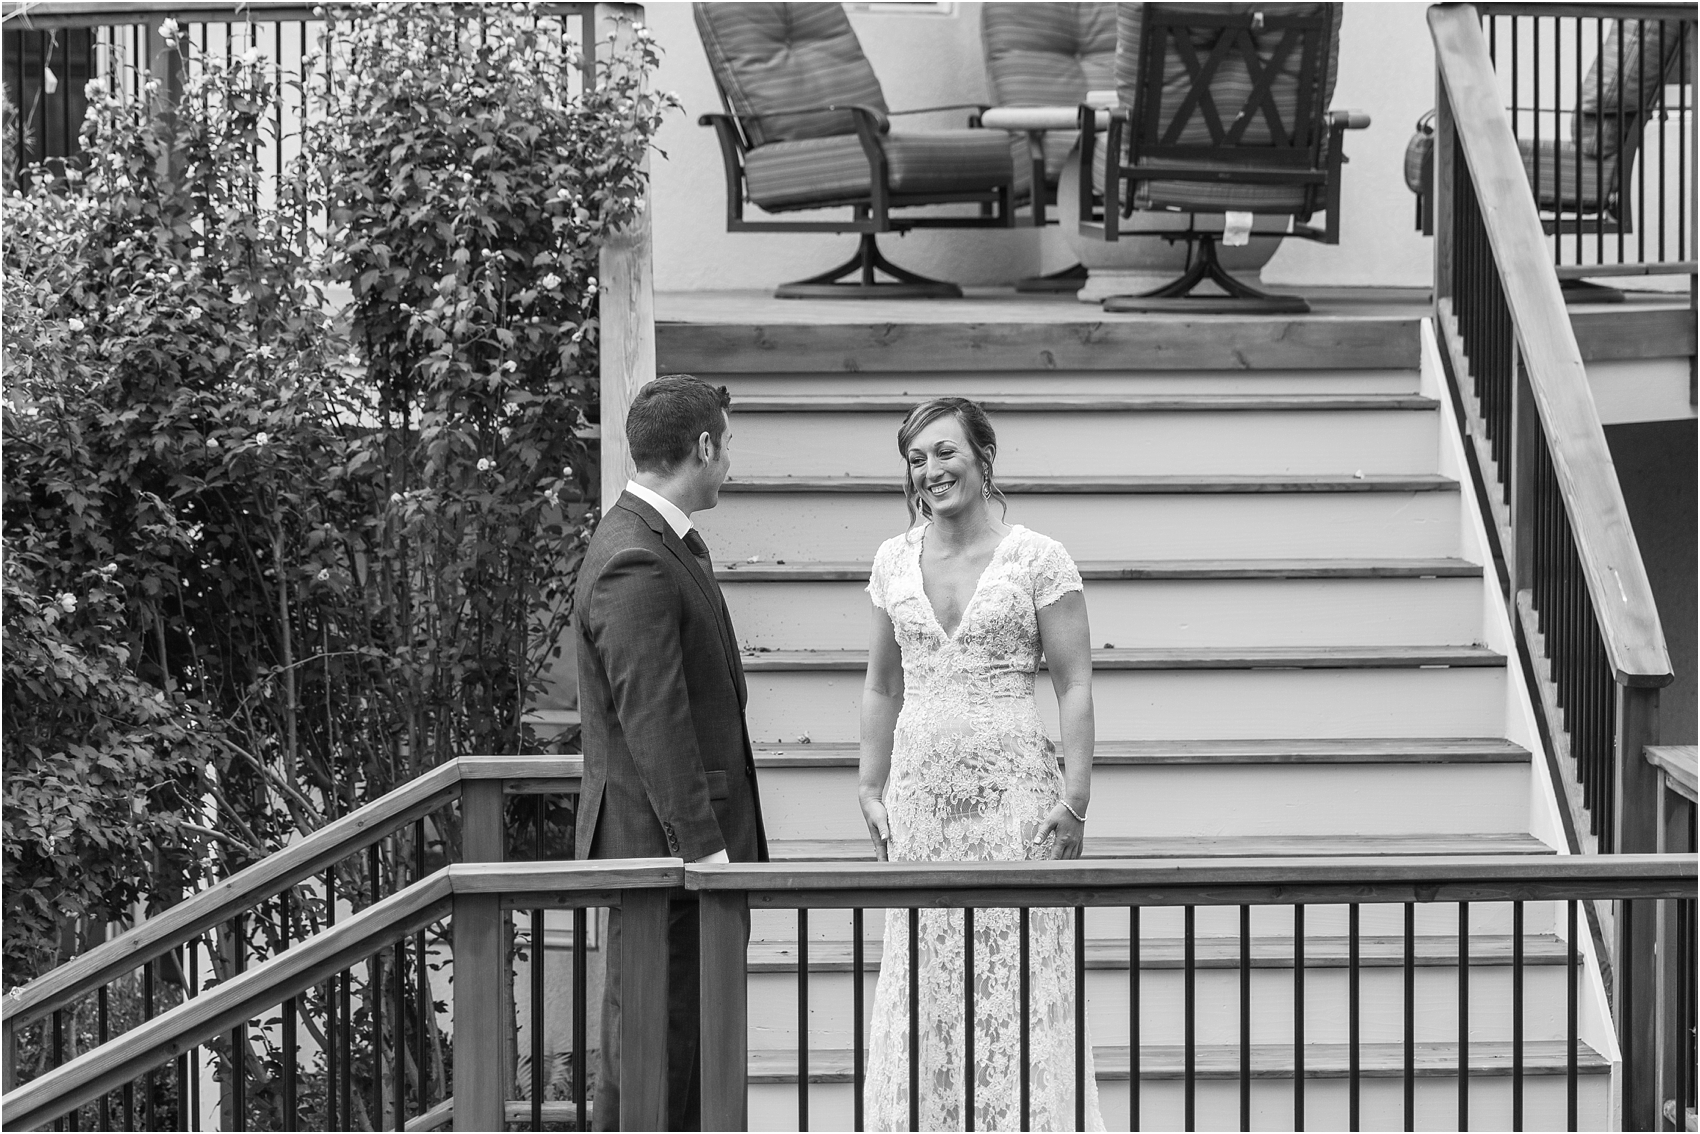 romantic-intimate-backyard-wedding-photos-at-private-estate-in-ann-arbor-mi-by-courtney-carolyn-photography_0024.jpg